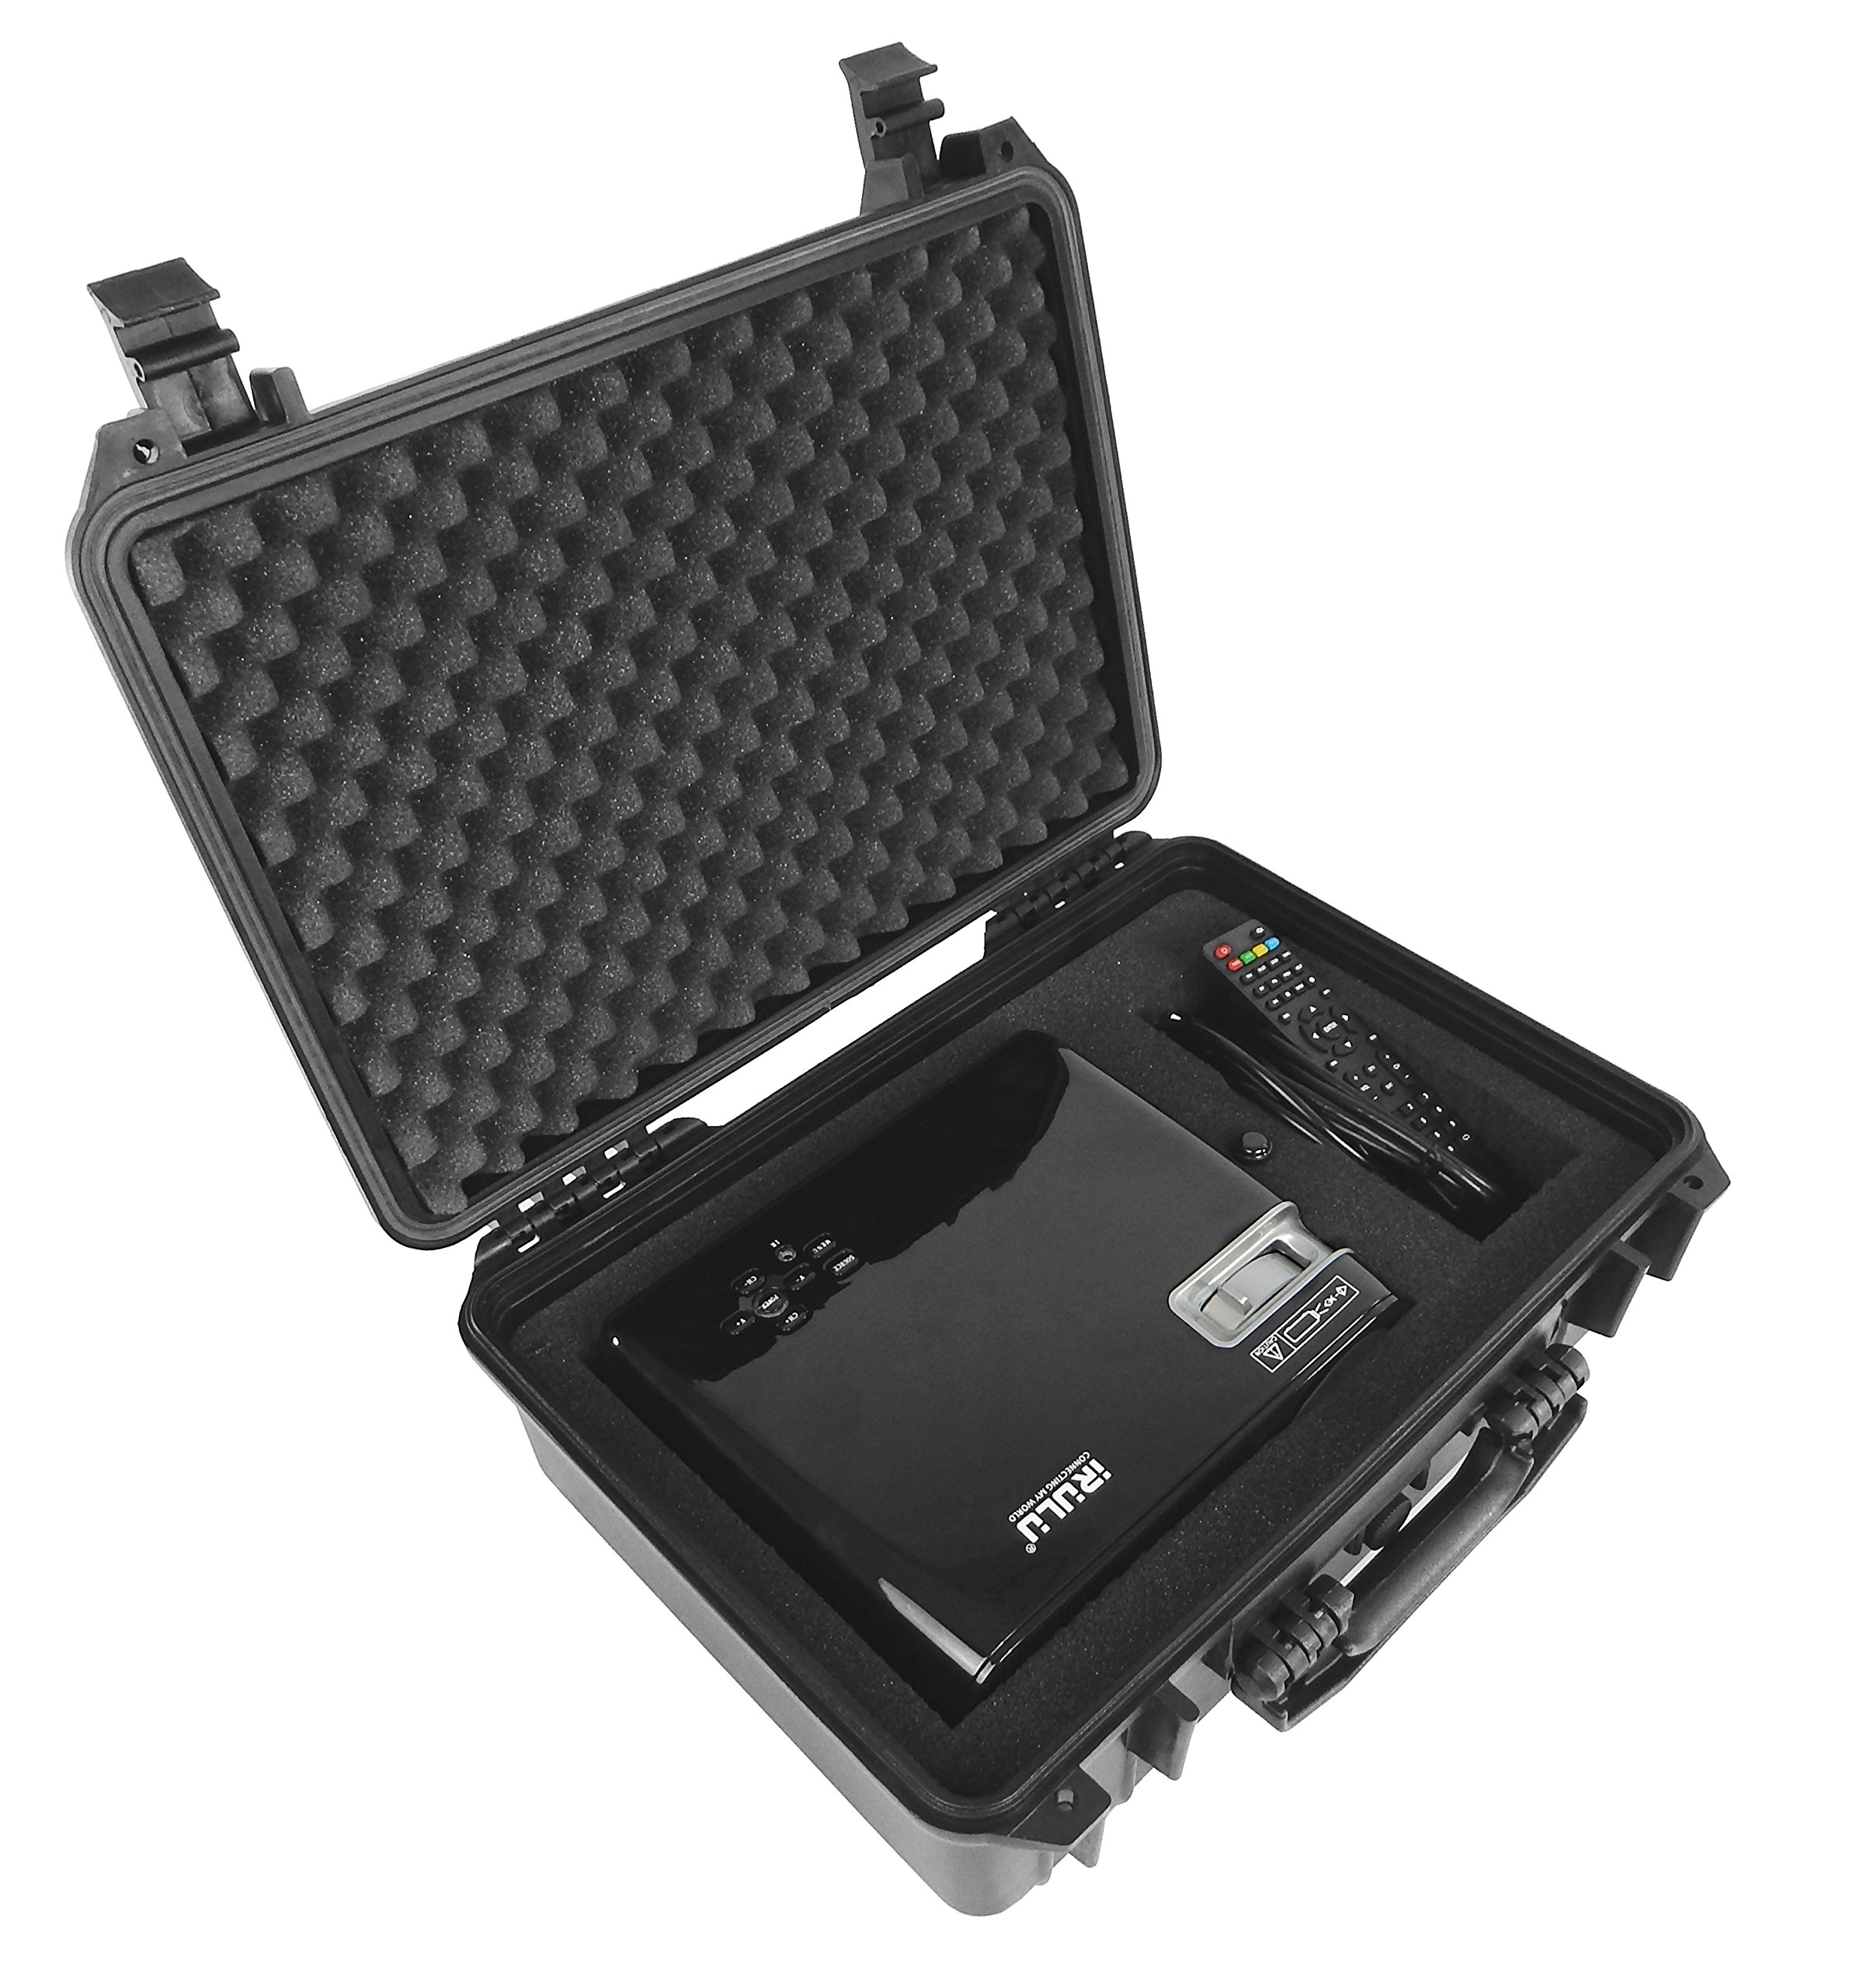 DROPSAFE Hard Carrying Case for iRulu P4, Tenker, ColoFocus Home Cinema Theater Video Projector w/ Dense Foam - Fits Projector, Cables, Remote, Screw Cap, and Accessories - Waterproof and Dustproof by CASEMATIX